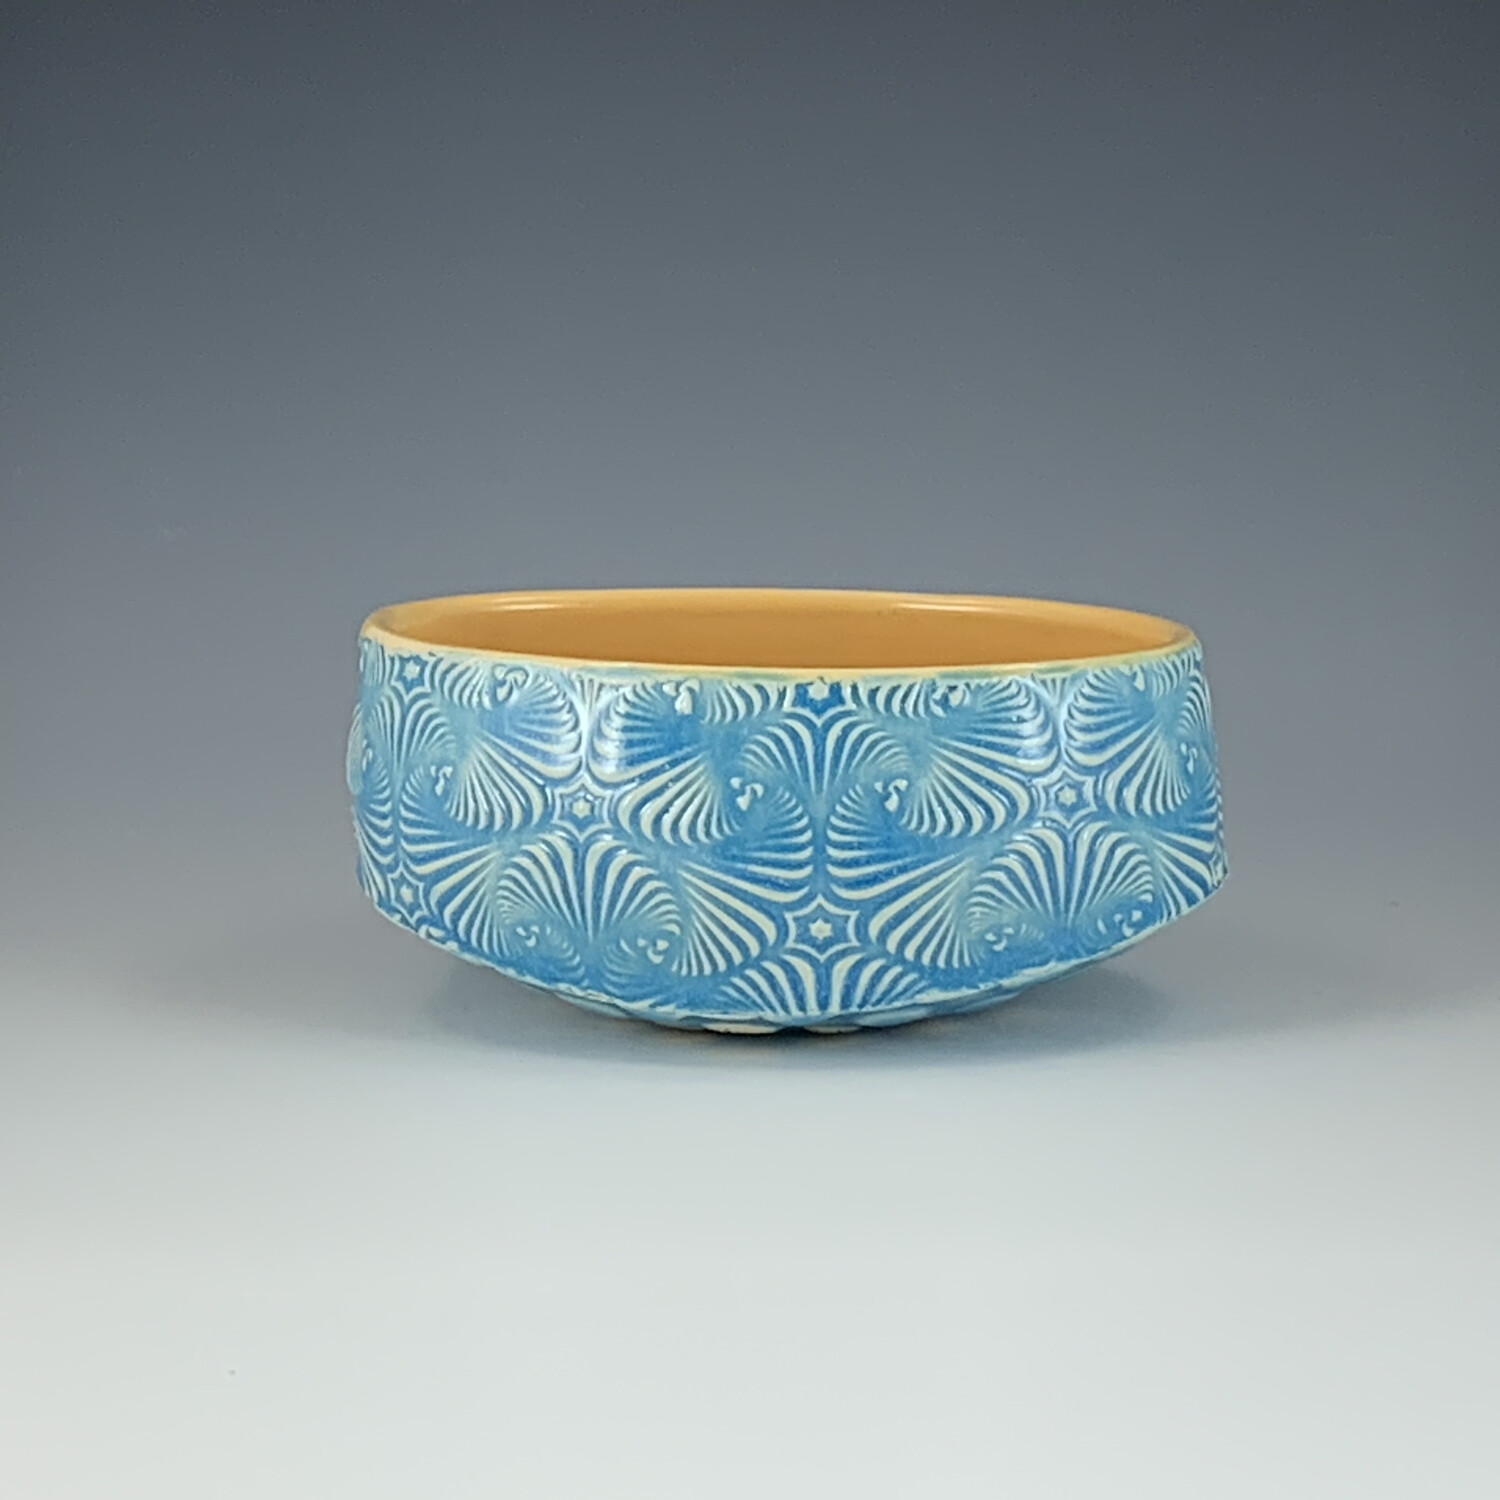 Small Oval Bowl in yellow & lake ice blue